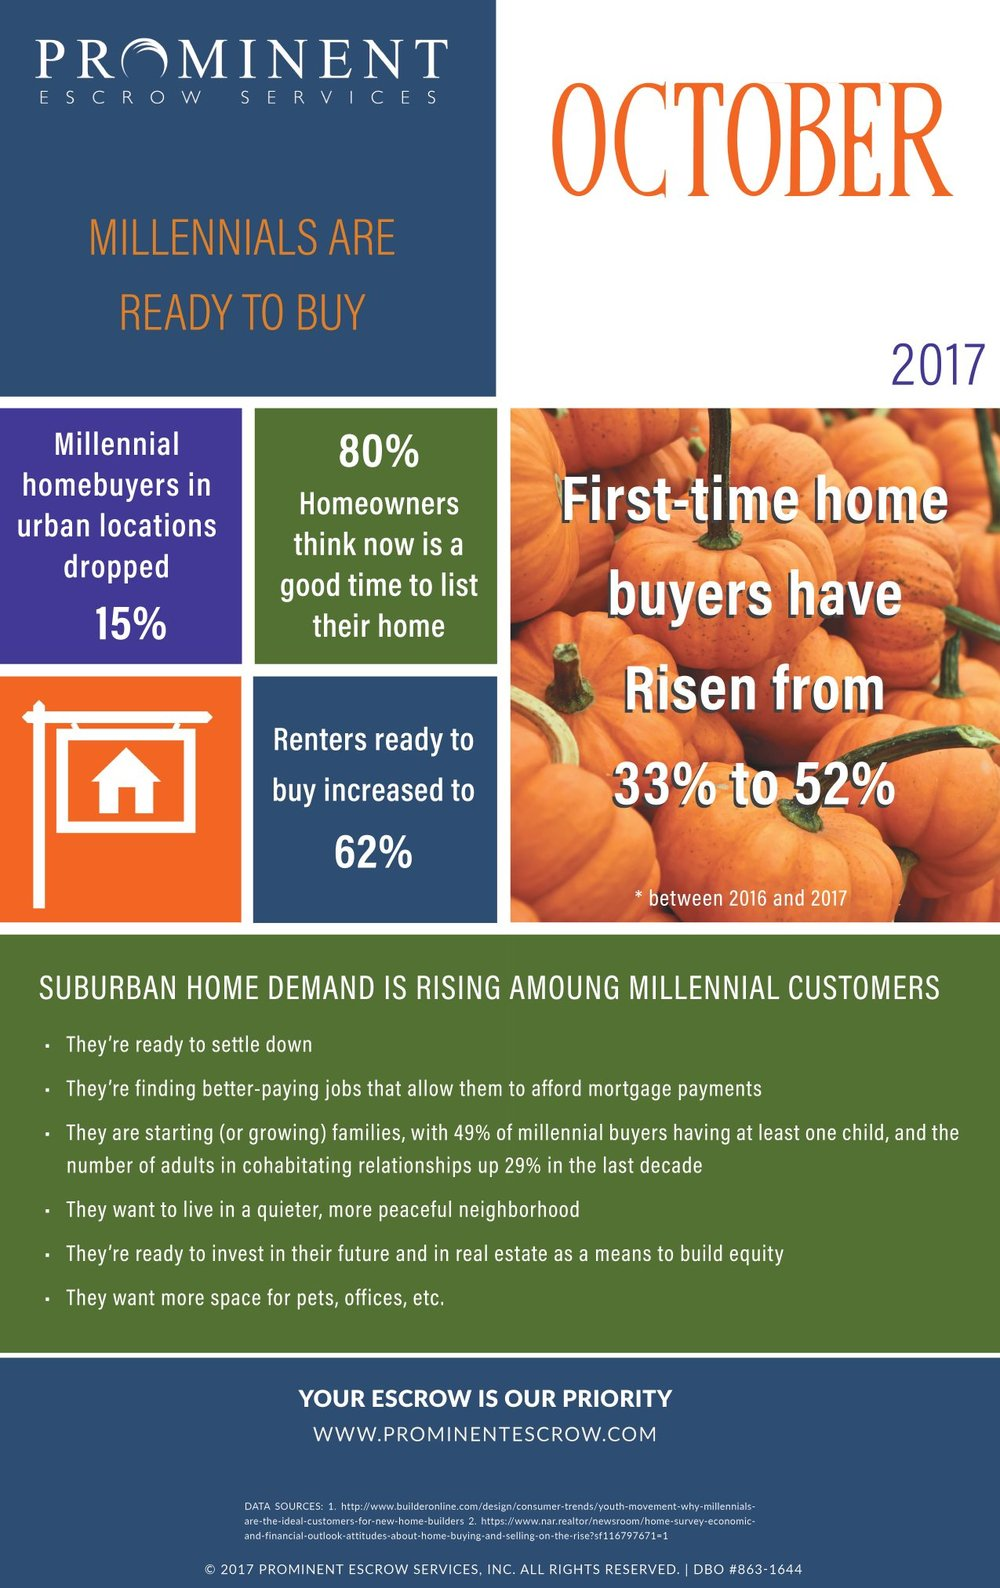 10-1-17 Millennials-are-ready-to-Buy_Oct17-1-e1506734939584.jpg